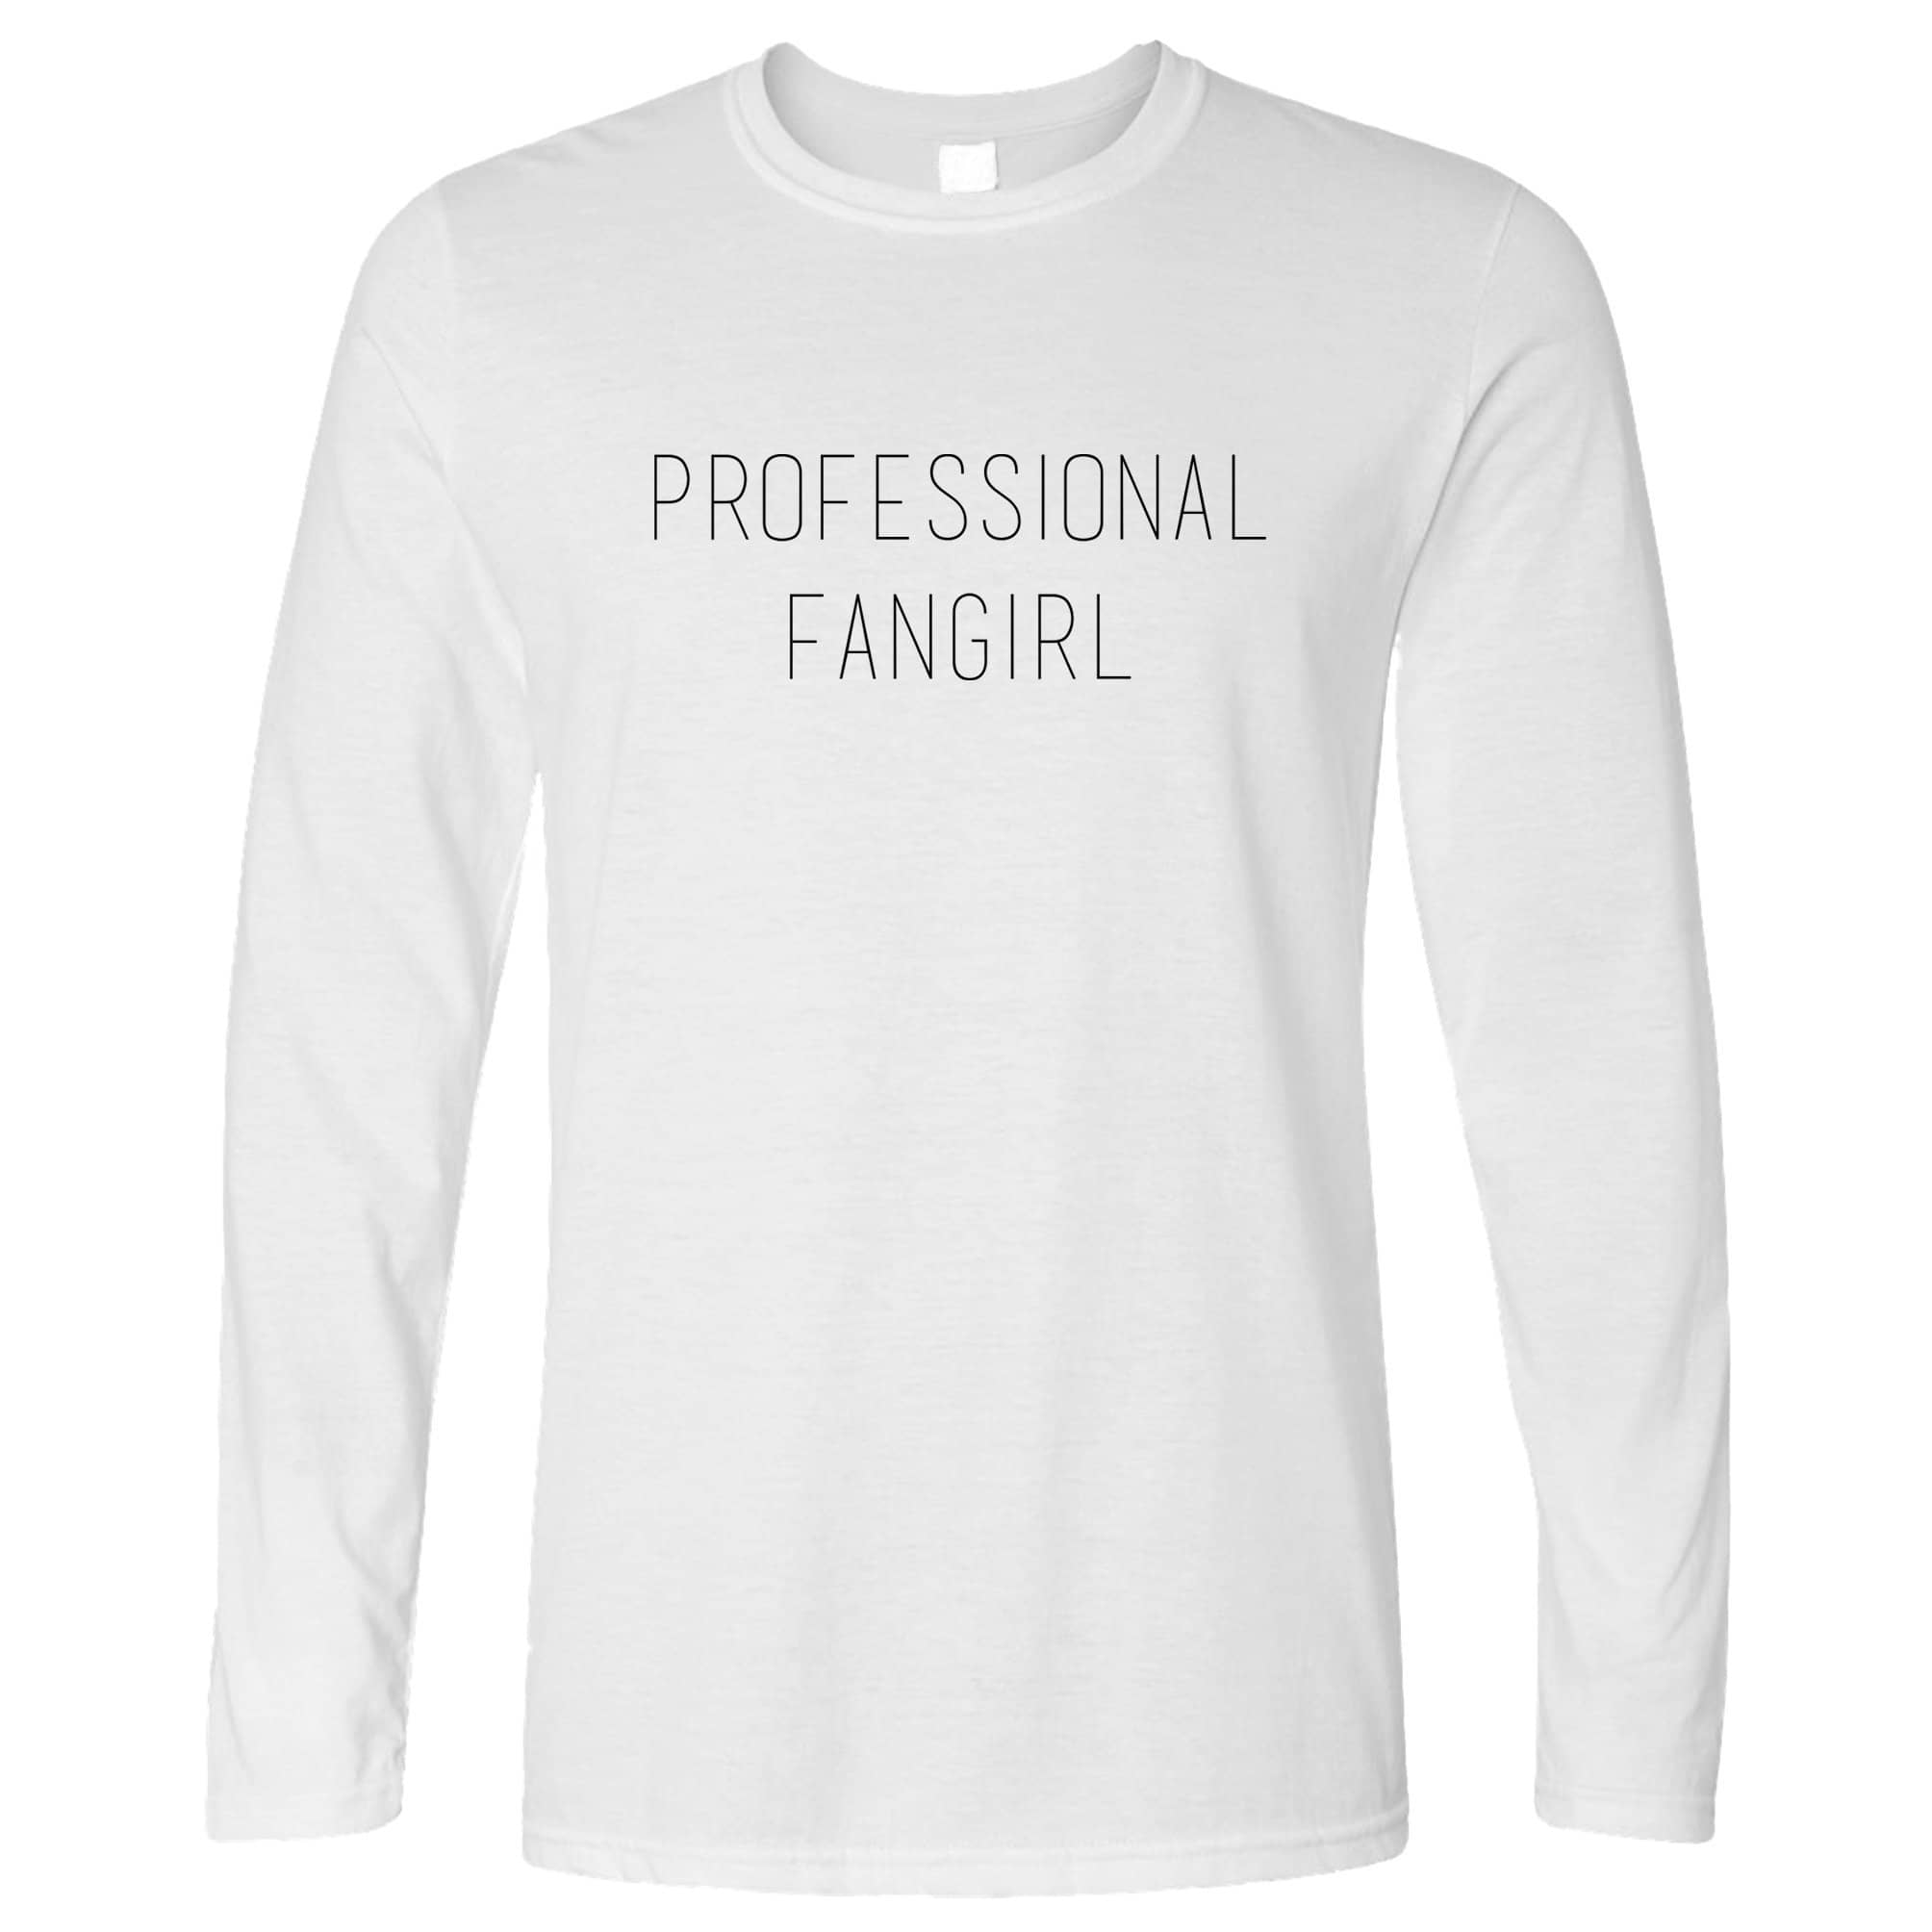 Novelty Joke Slogan Long Sleeve Professional Fangirl T-Shirt